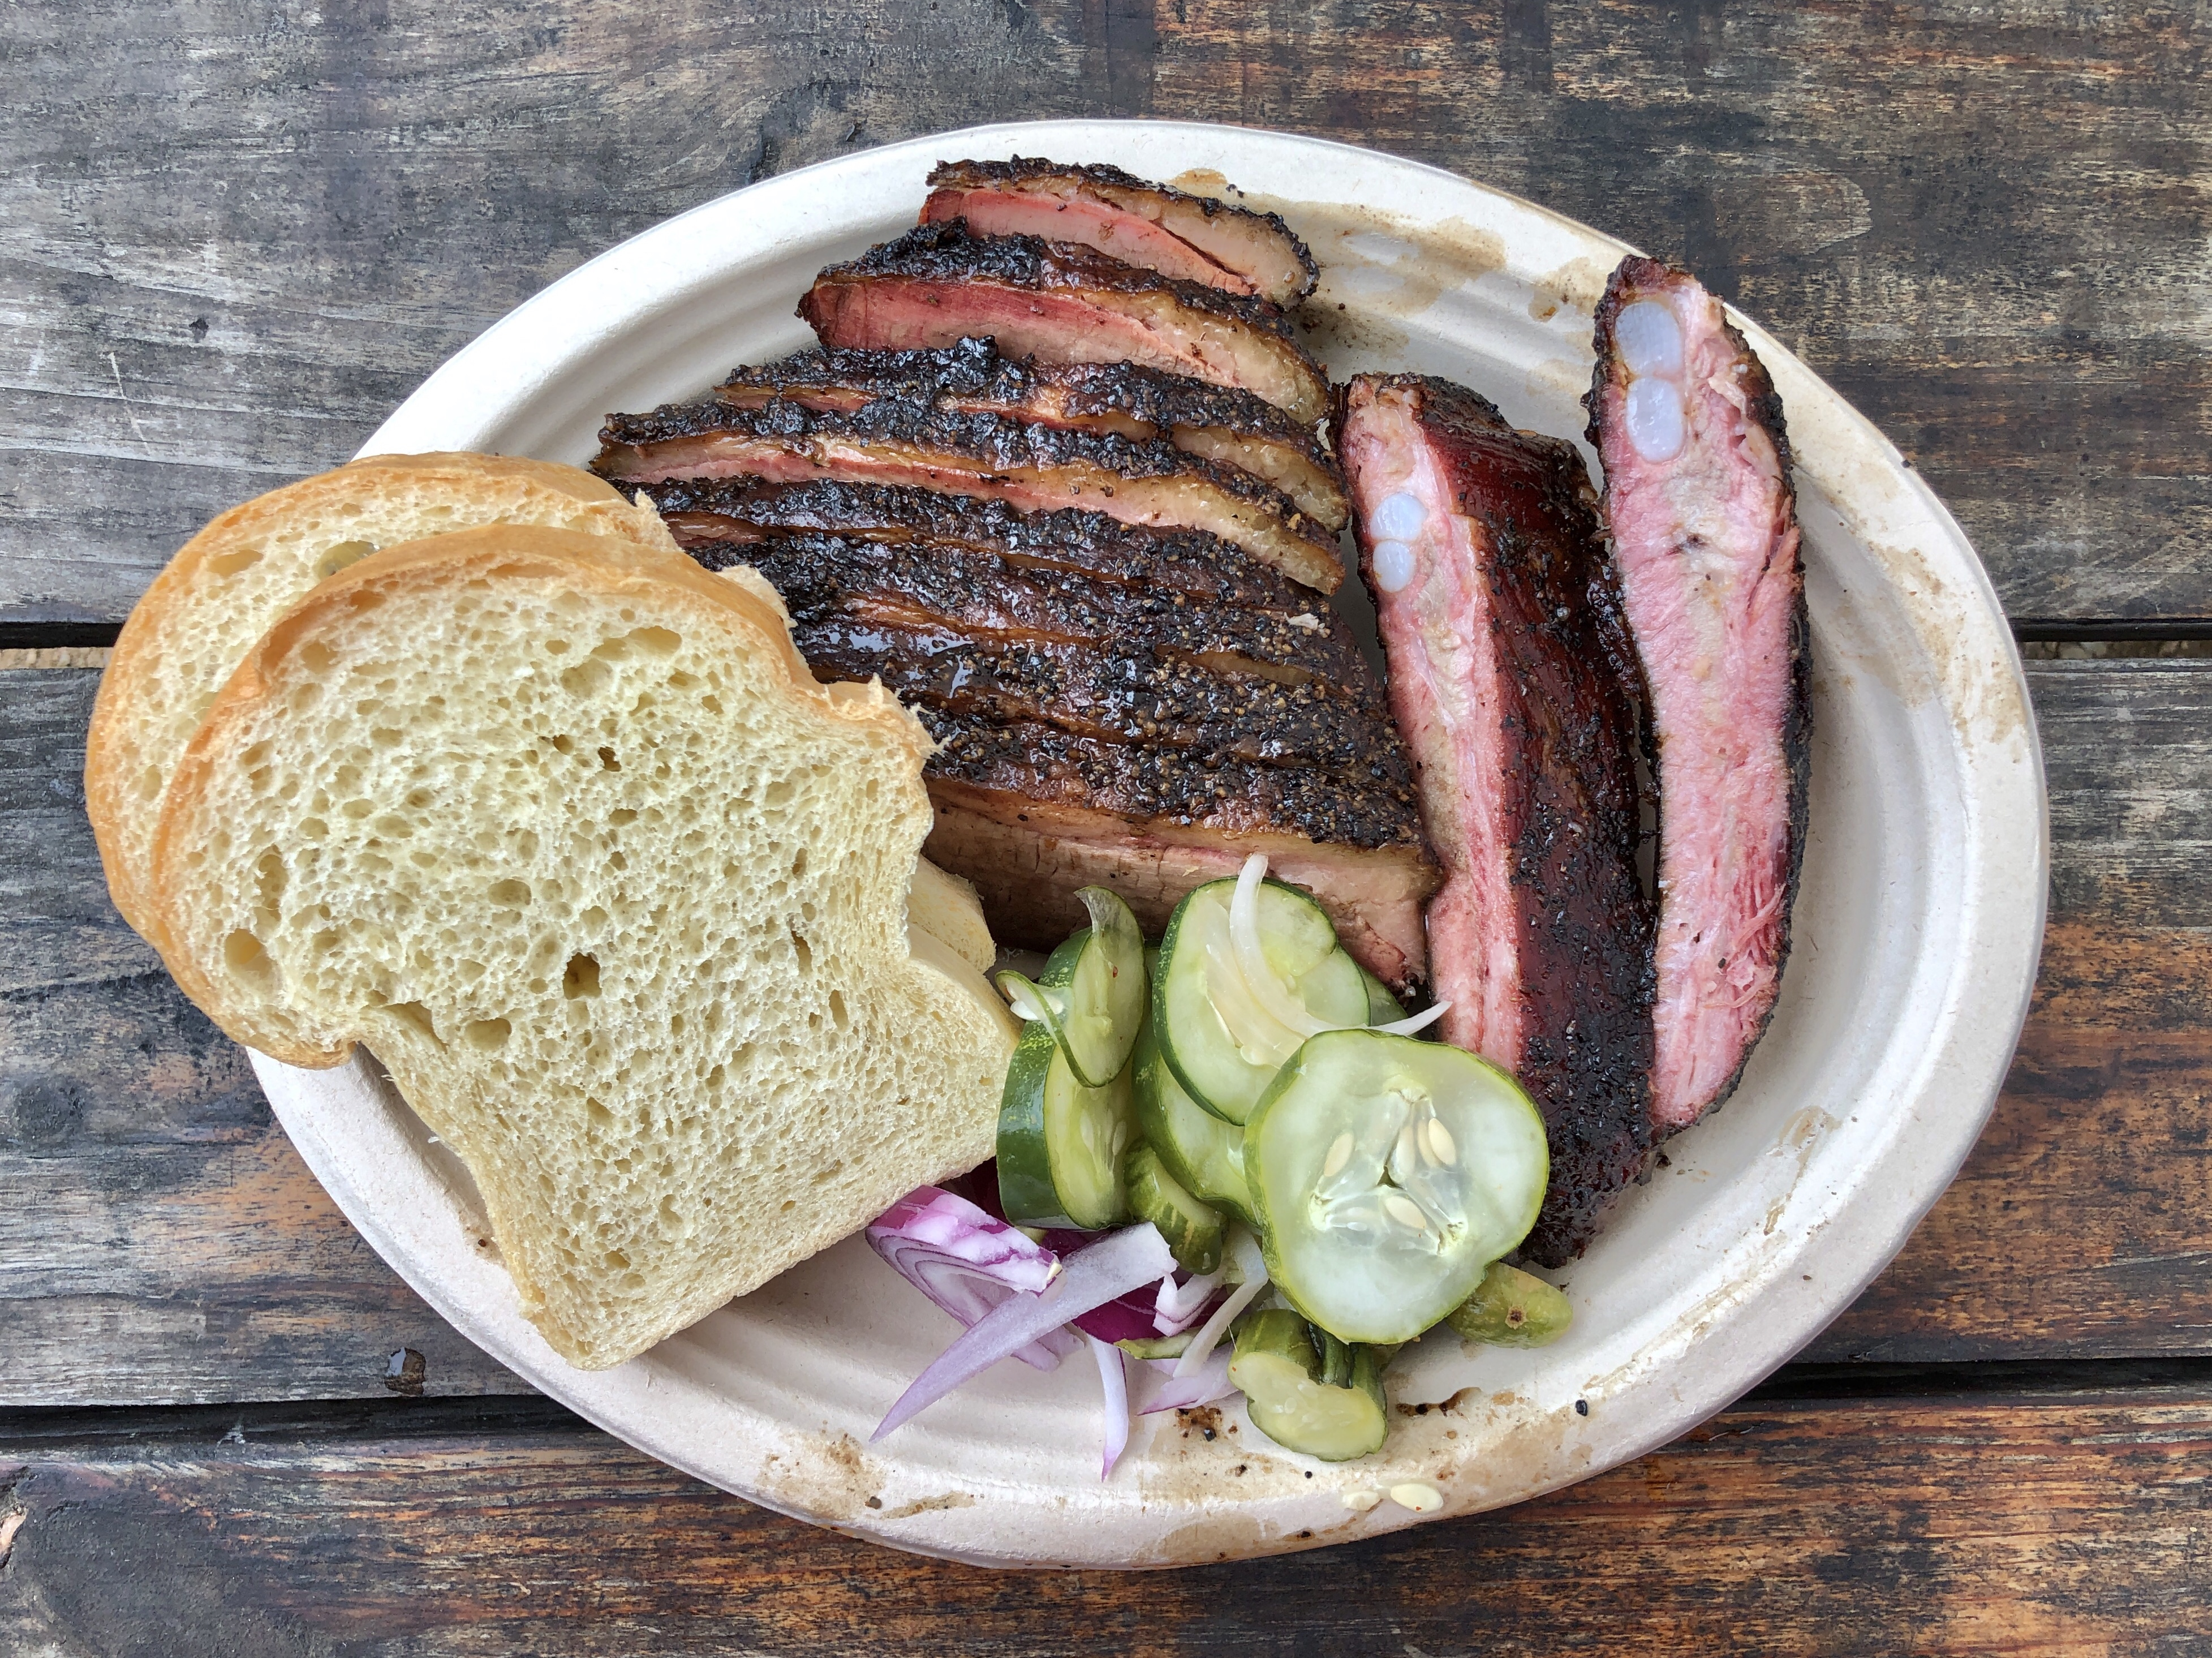 Micklethwait Craft Meats barbecue plate in Austin, Texas